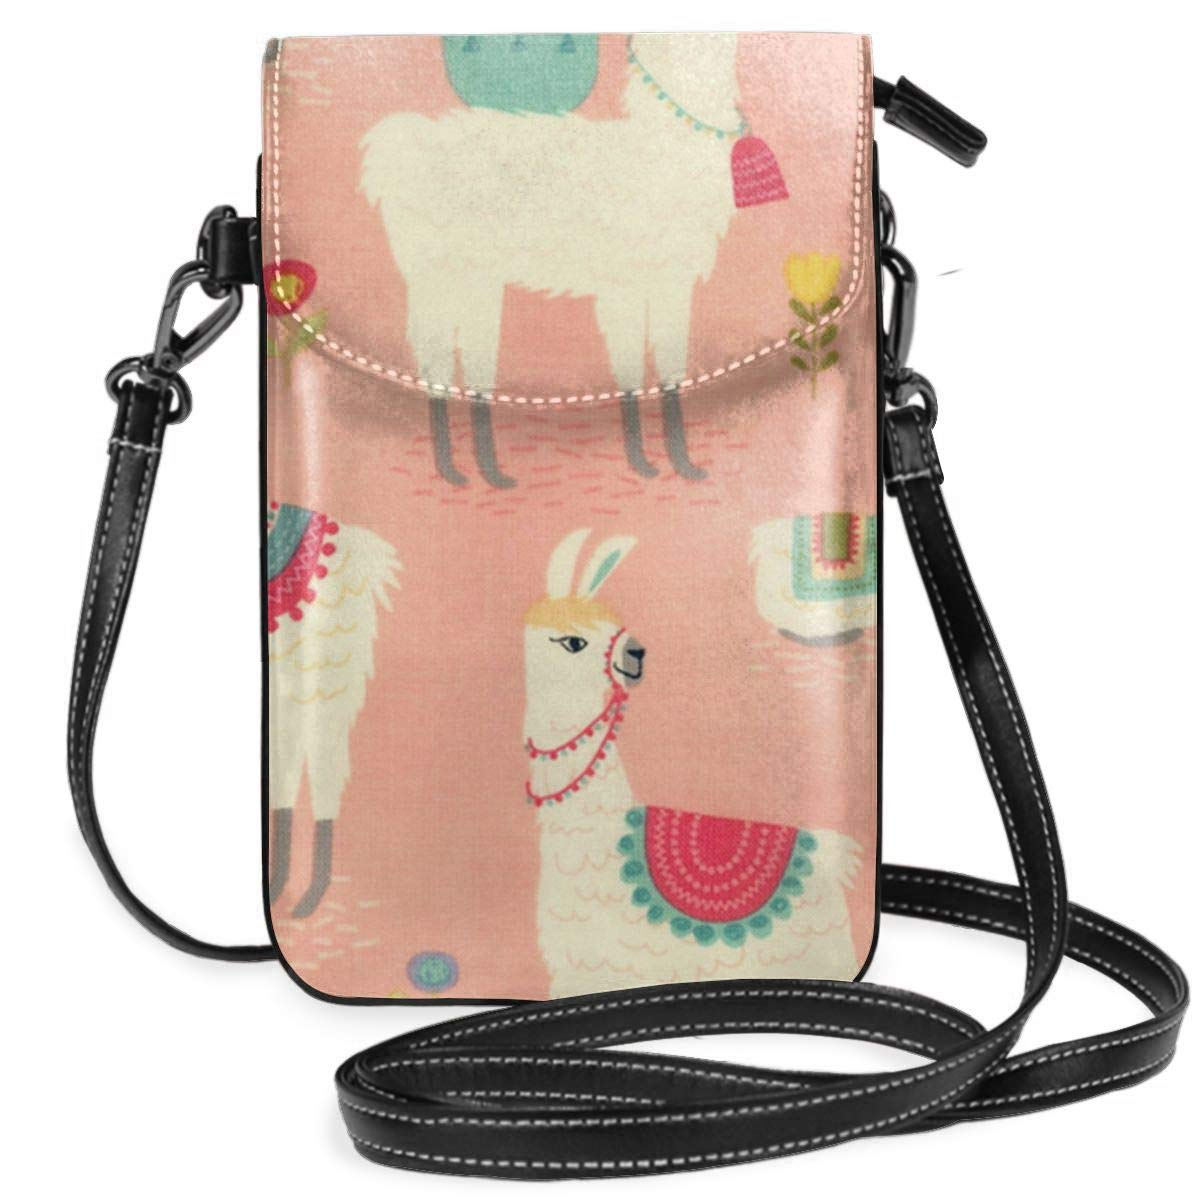 Small Cell Phone Purse Llama Crossbody Bags With Shoulder Strap Coin Purse Wallet For Women,Girls